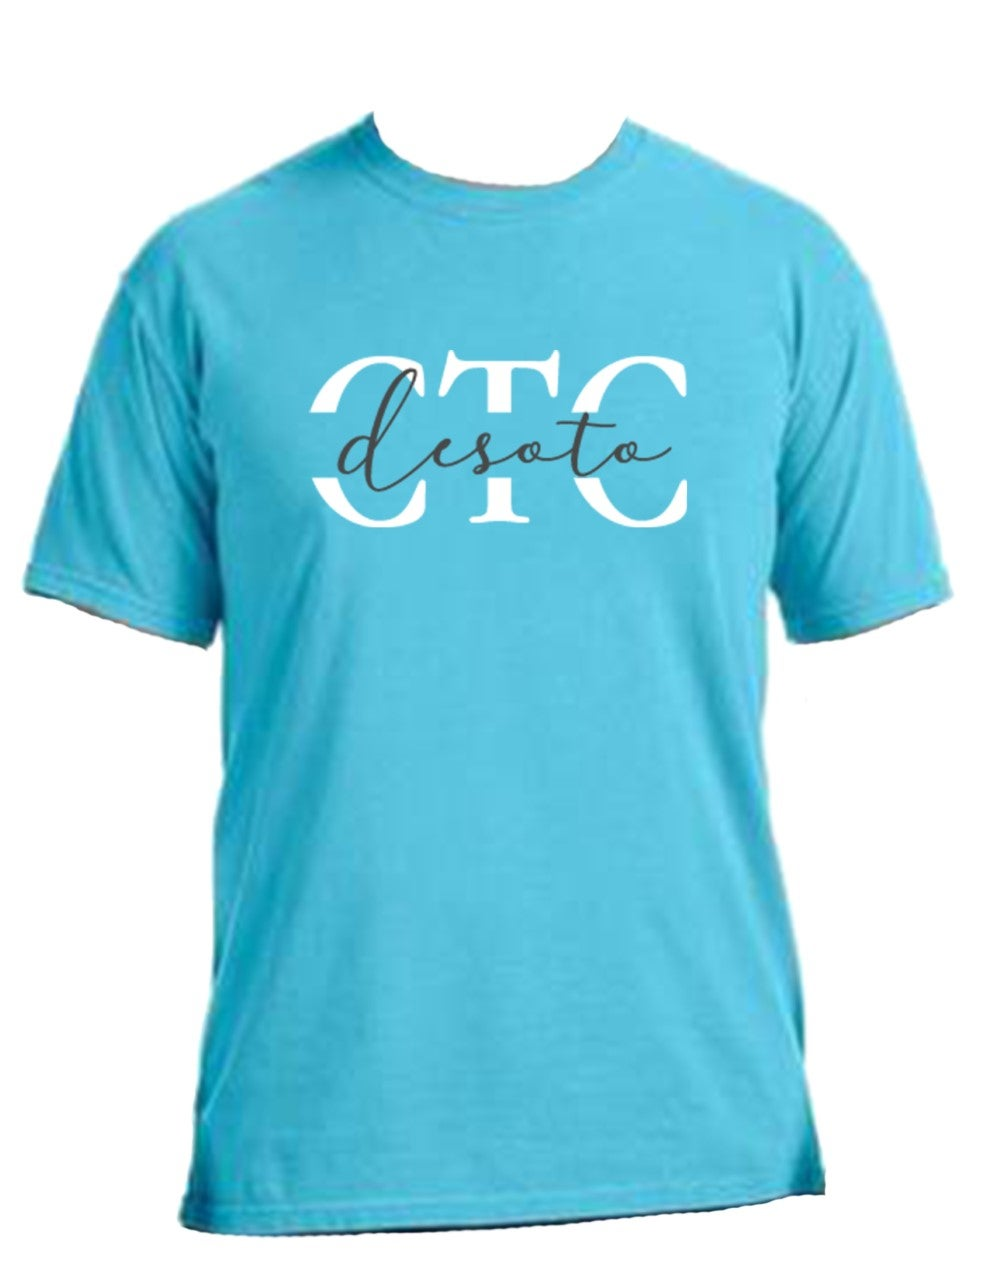 Image of CTC Desoto Comfort Color Shirt - EAST CAMPUS PICKUP